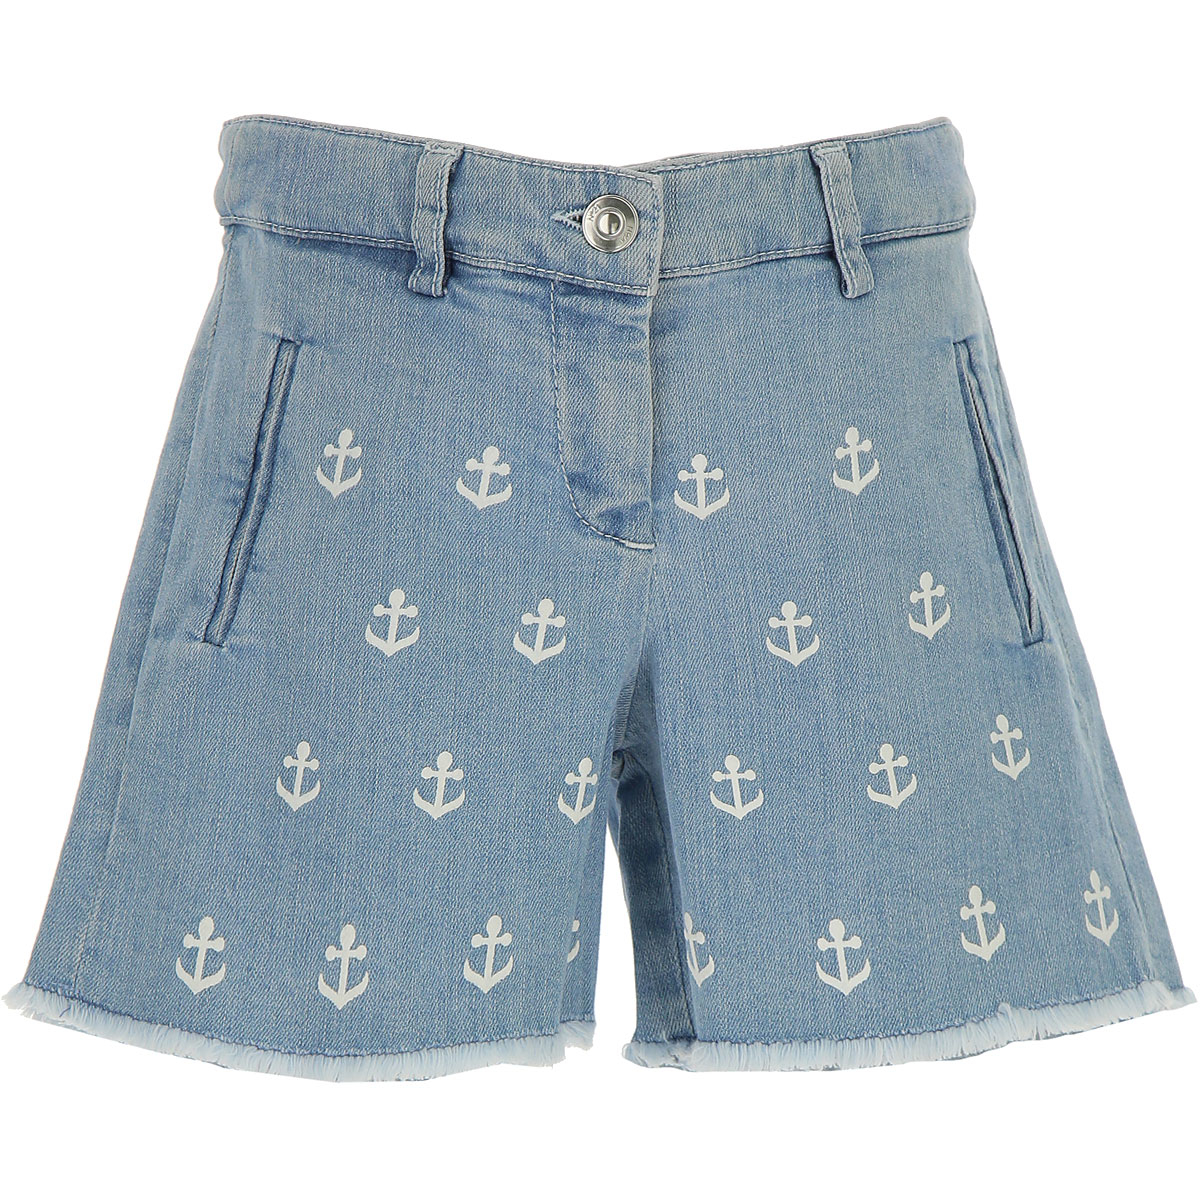 NO 21 Kids Shorts for Girls On Sale in Outlet Blue Denim DK - GOOFASH - Womens SHORTS